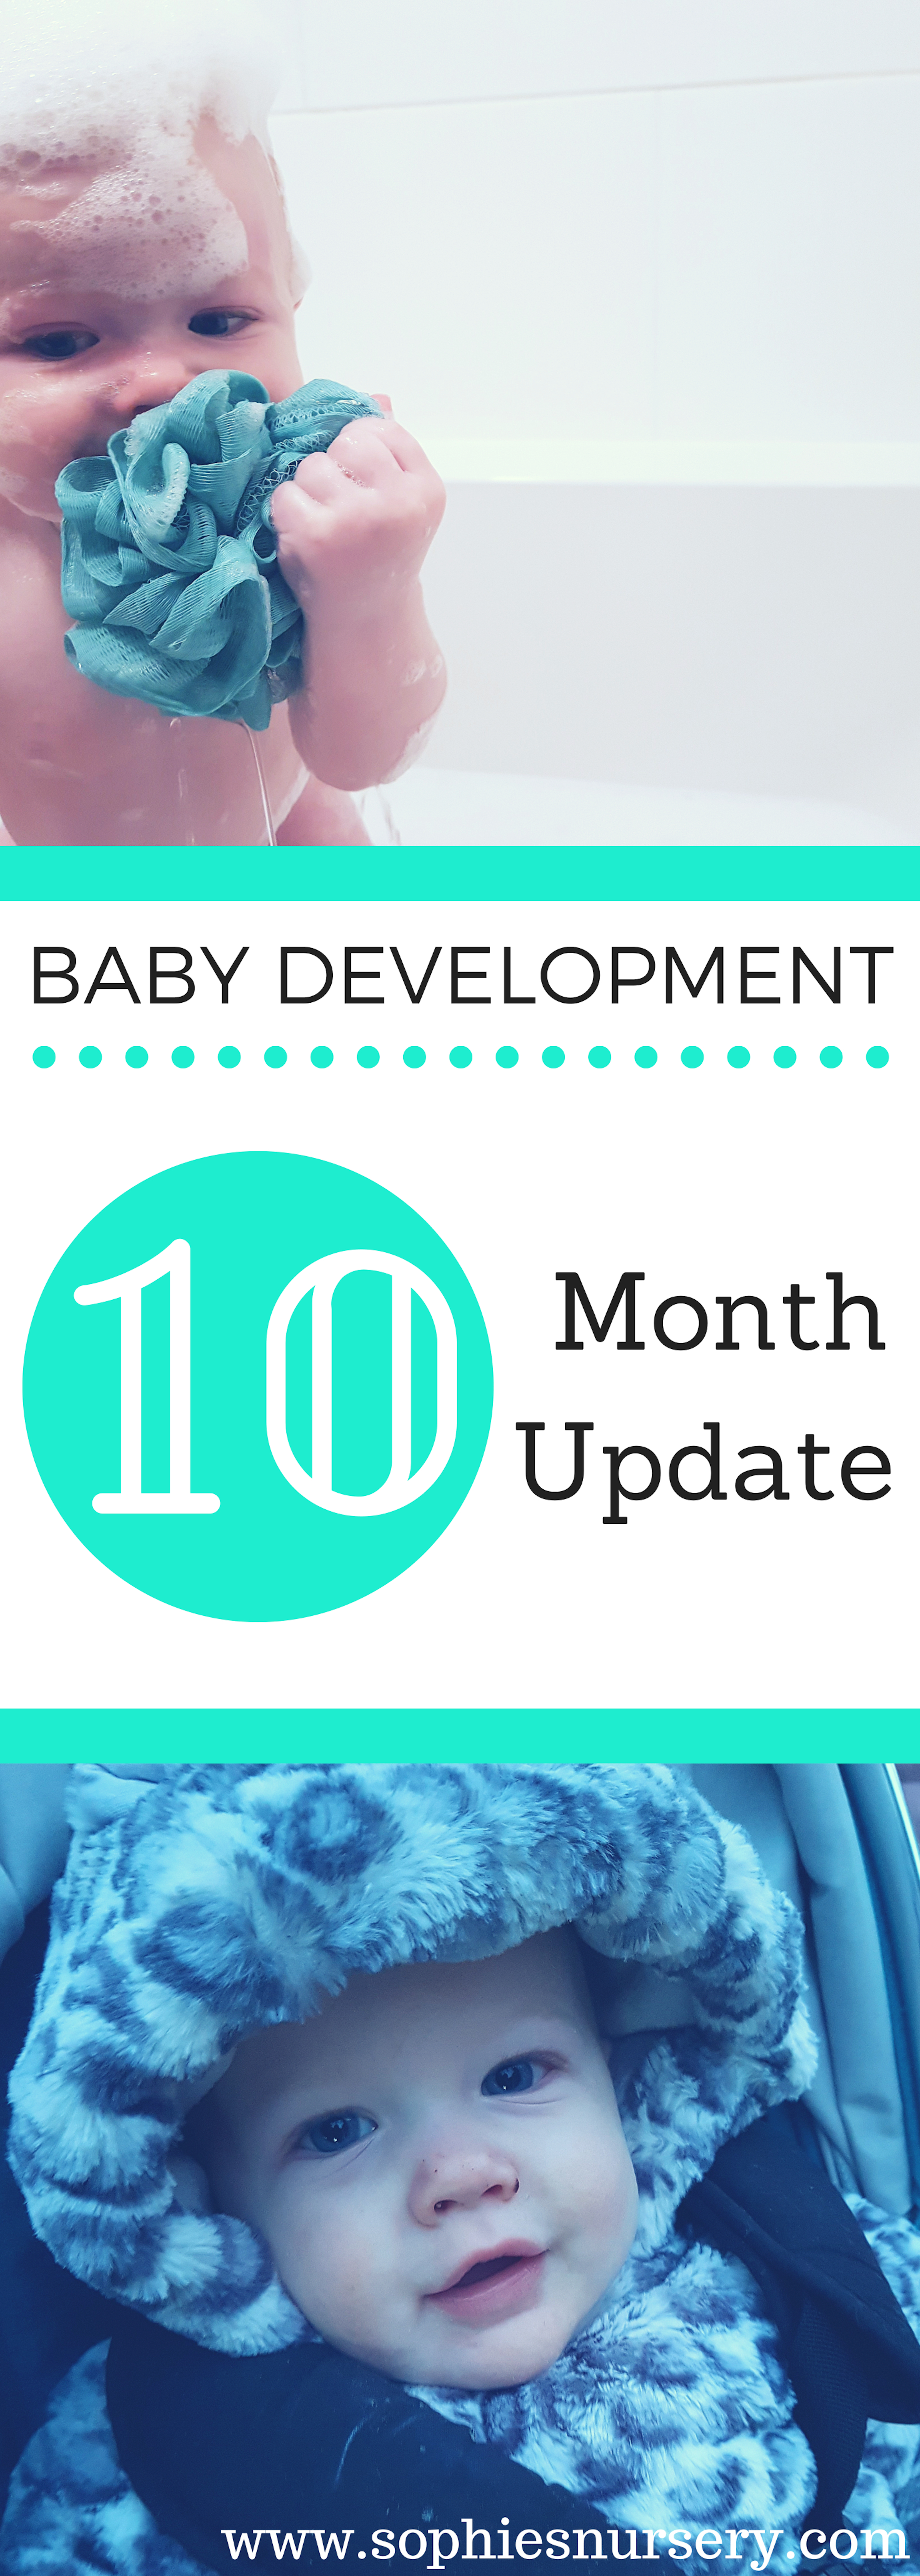 Charlie is getting closer to his first birthday & is developing fast! Take a look at his baby development at 10 months - so much learning & growing!  #mumlife #parenting #babydevelopment #10monthsold #grossmotor #finemotor #baby #familylife